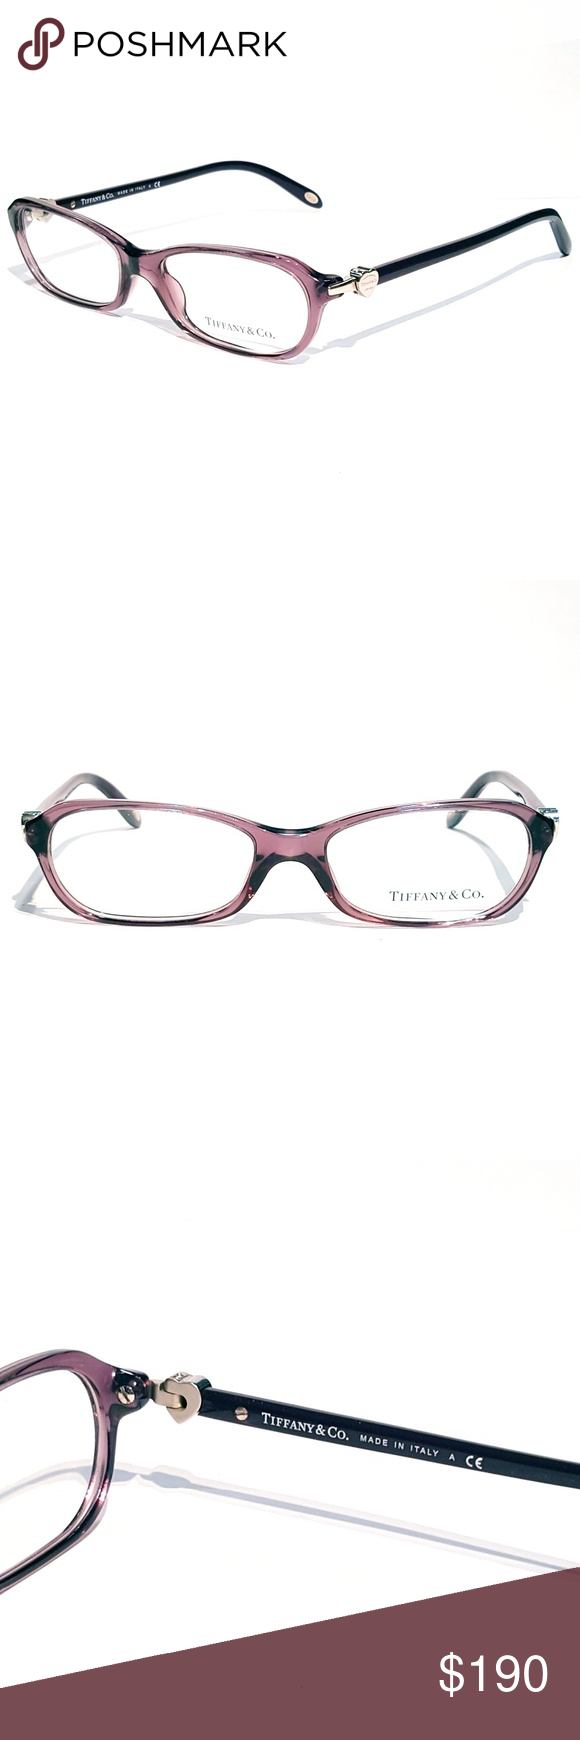 Tiffany & Co. Purple Eyeglasses | Frame sizes, Originals and Accessories